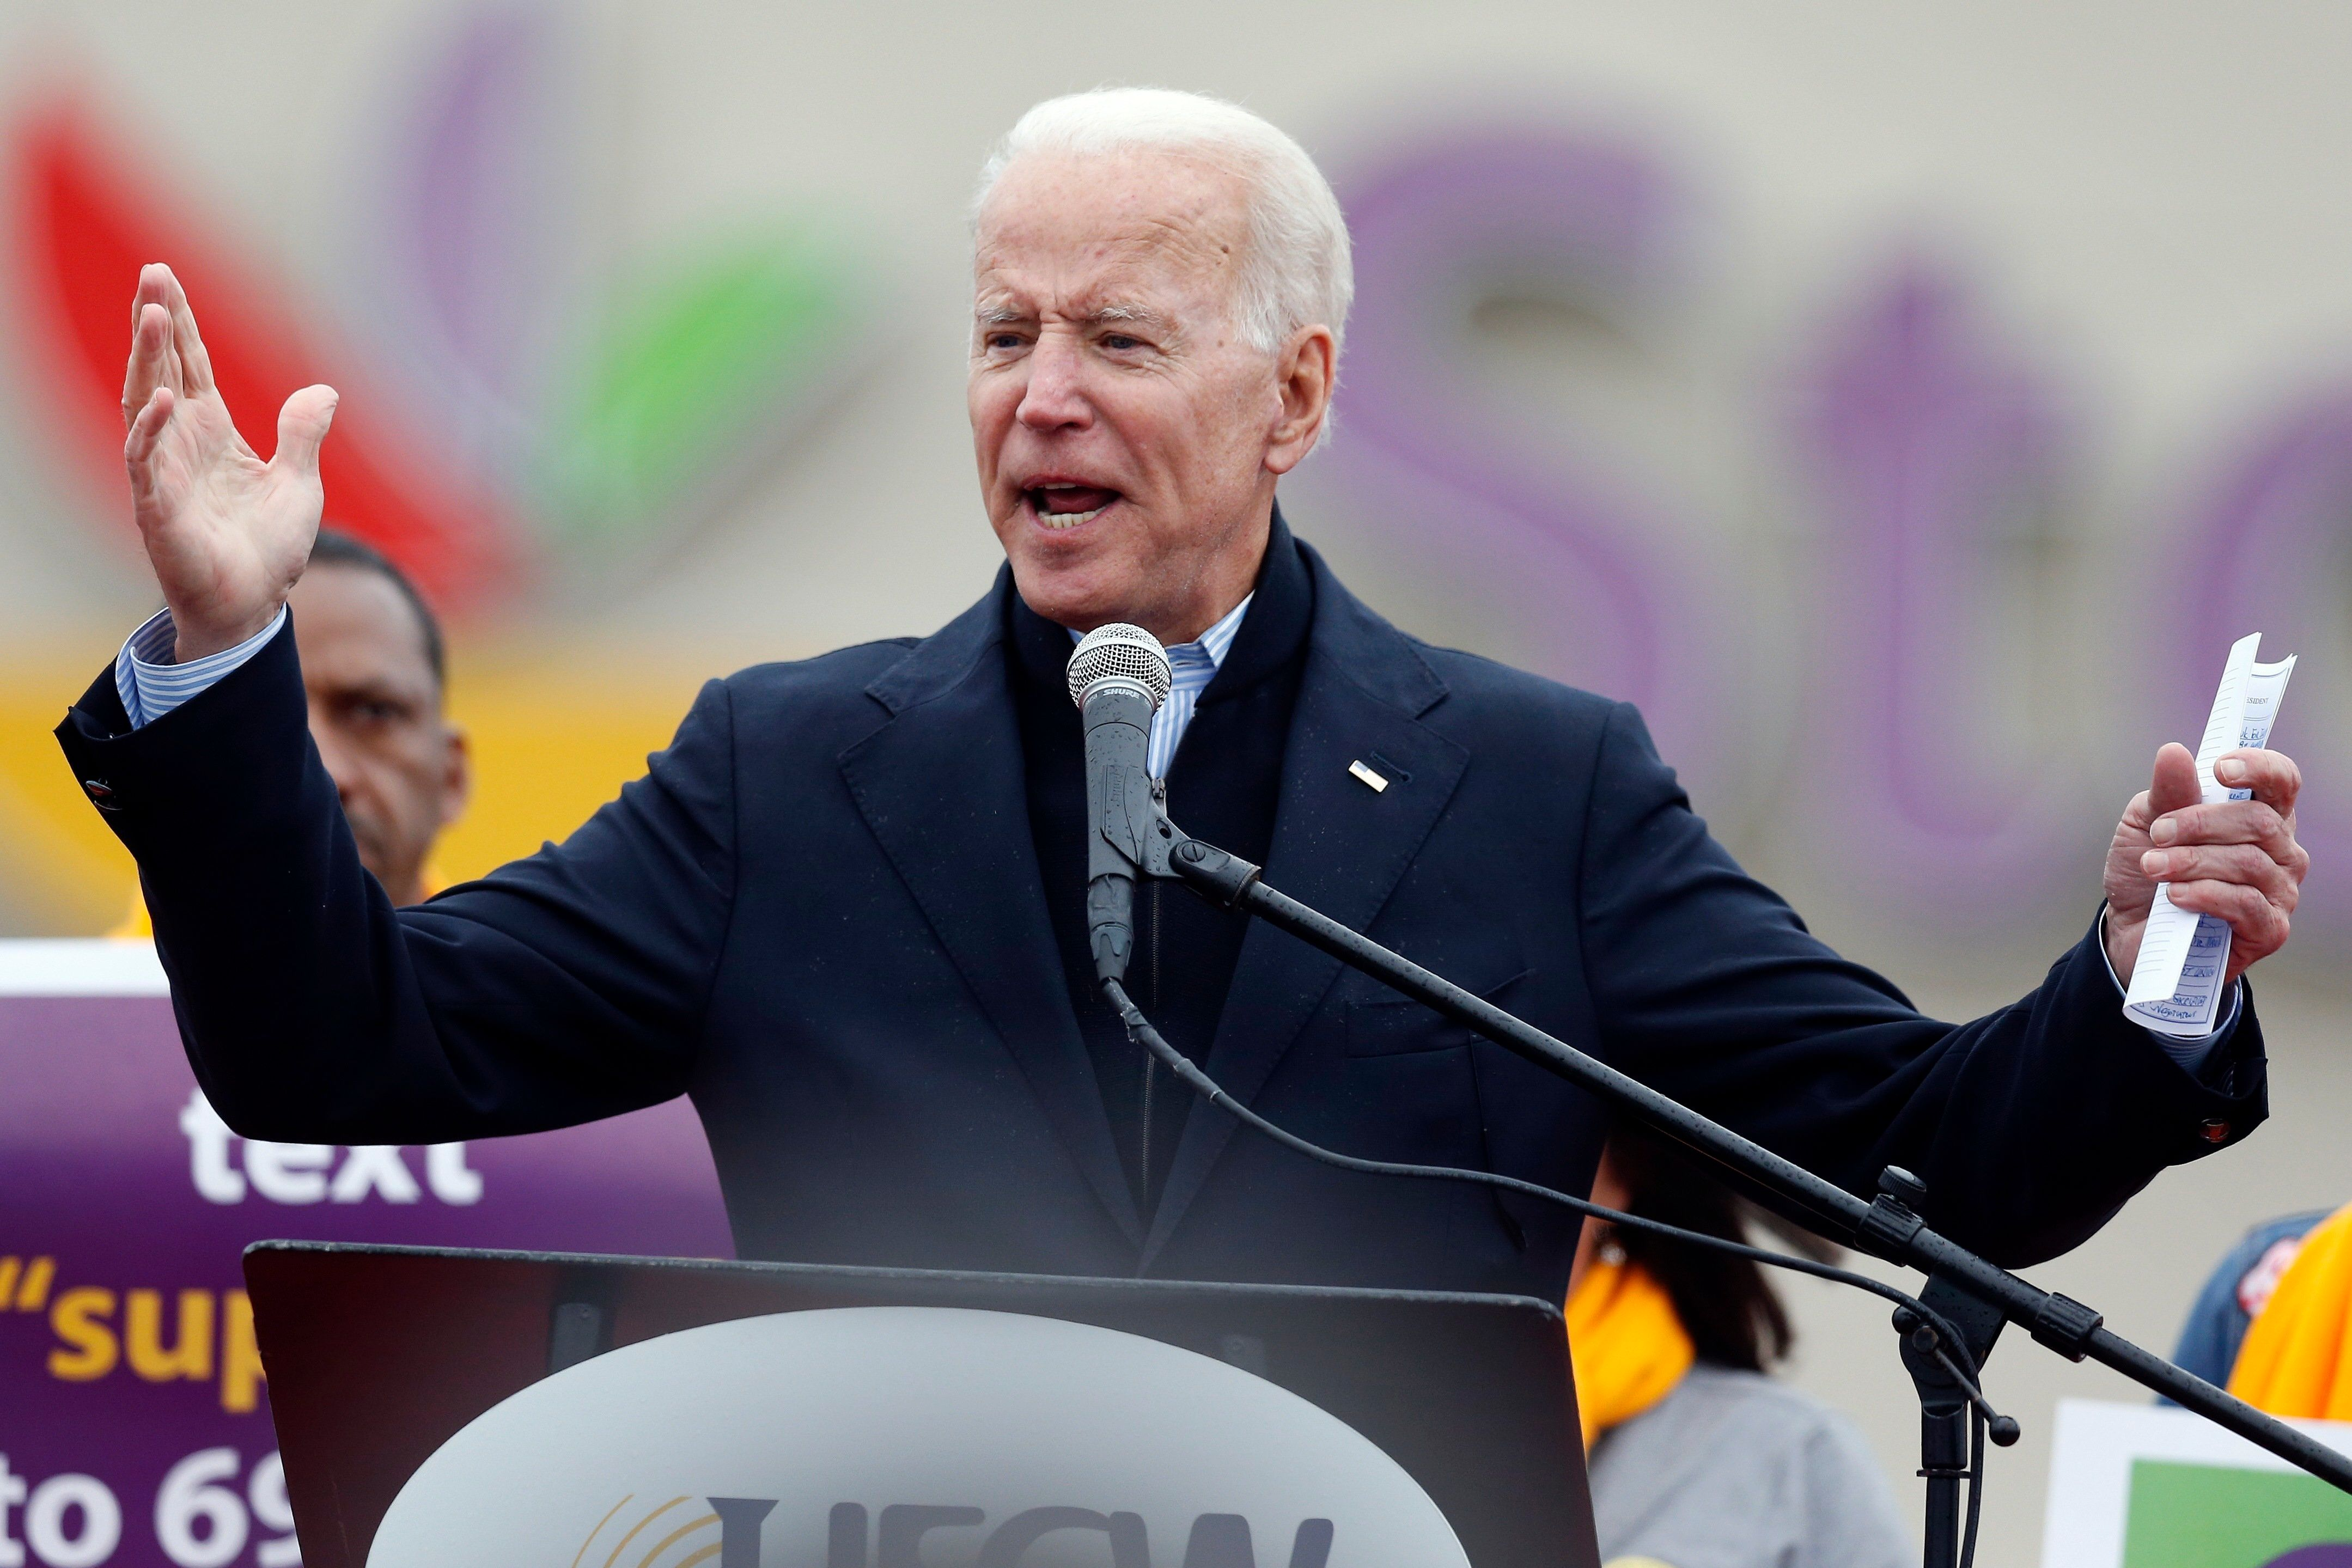 Joe Biden Expected To Announce 2020 Campaign Next Week